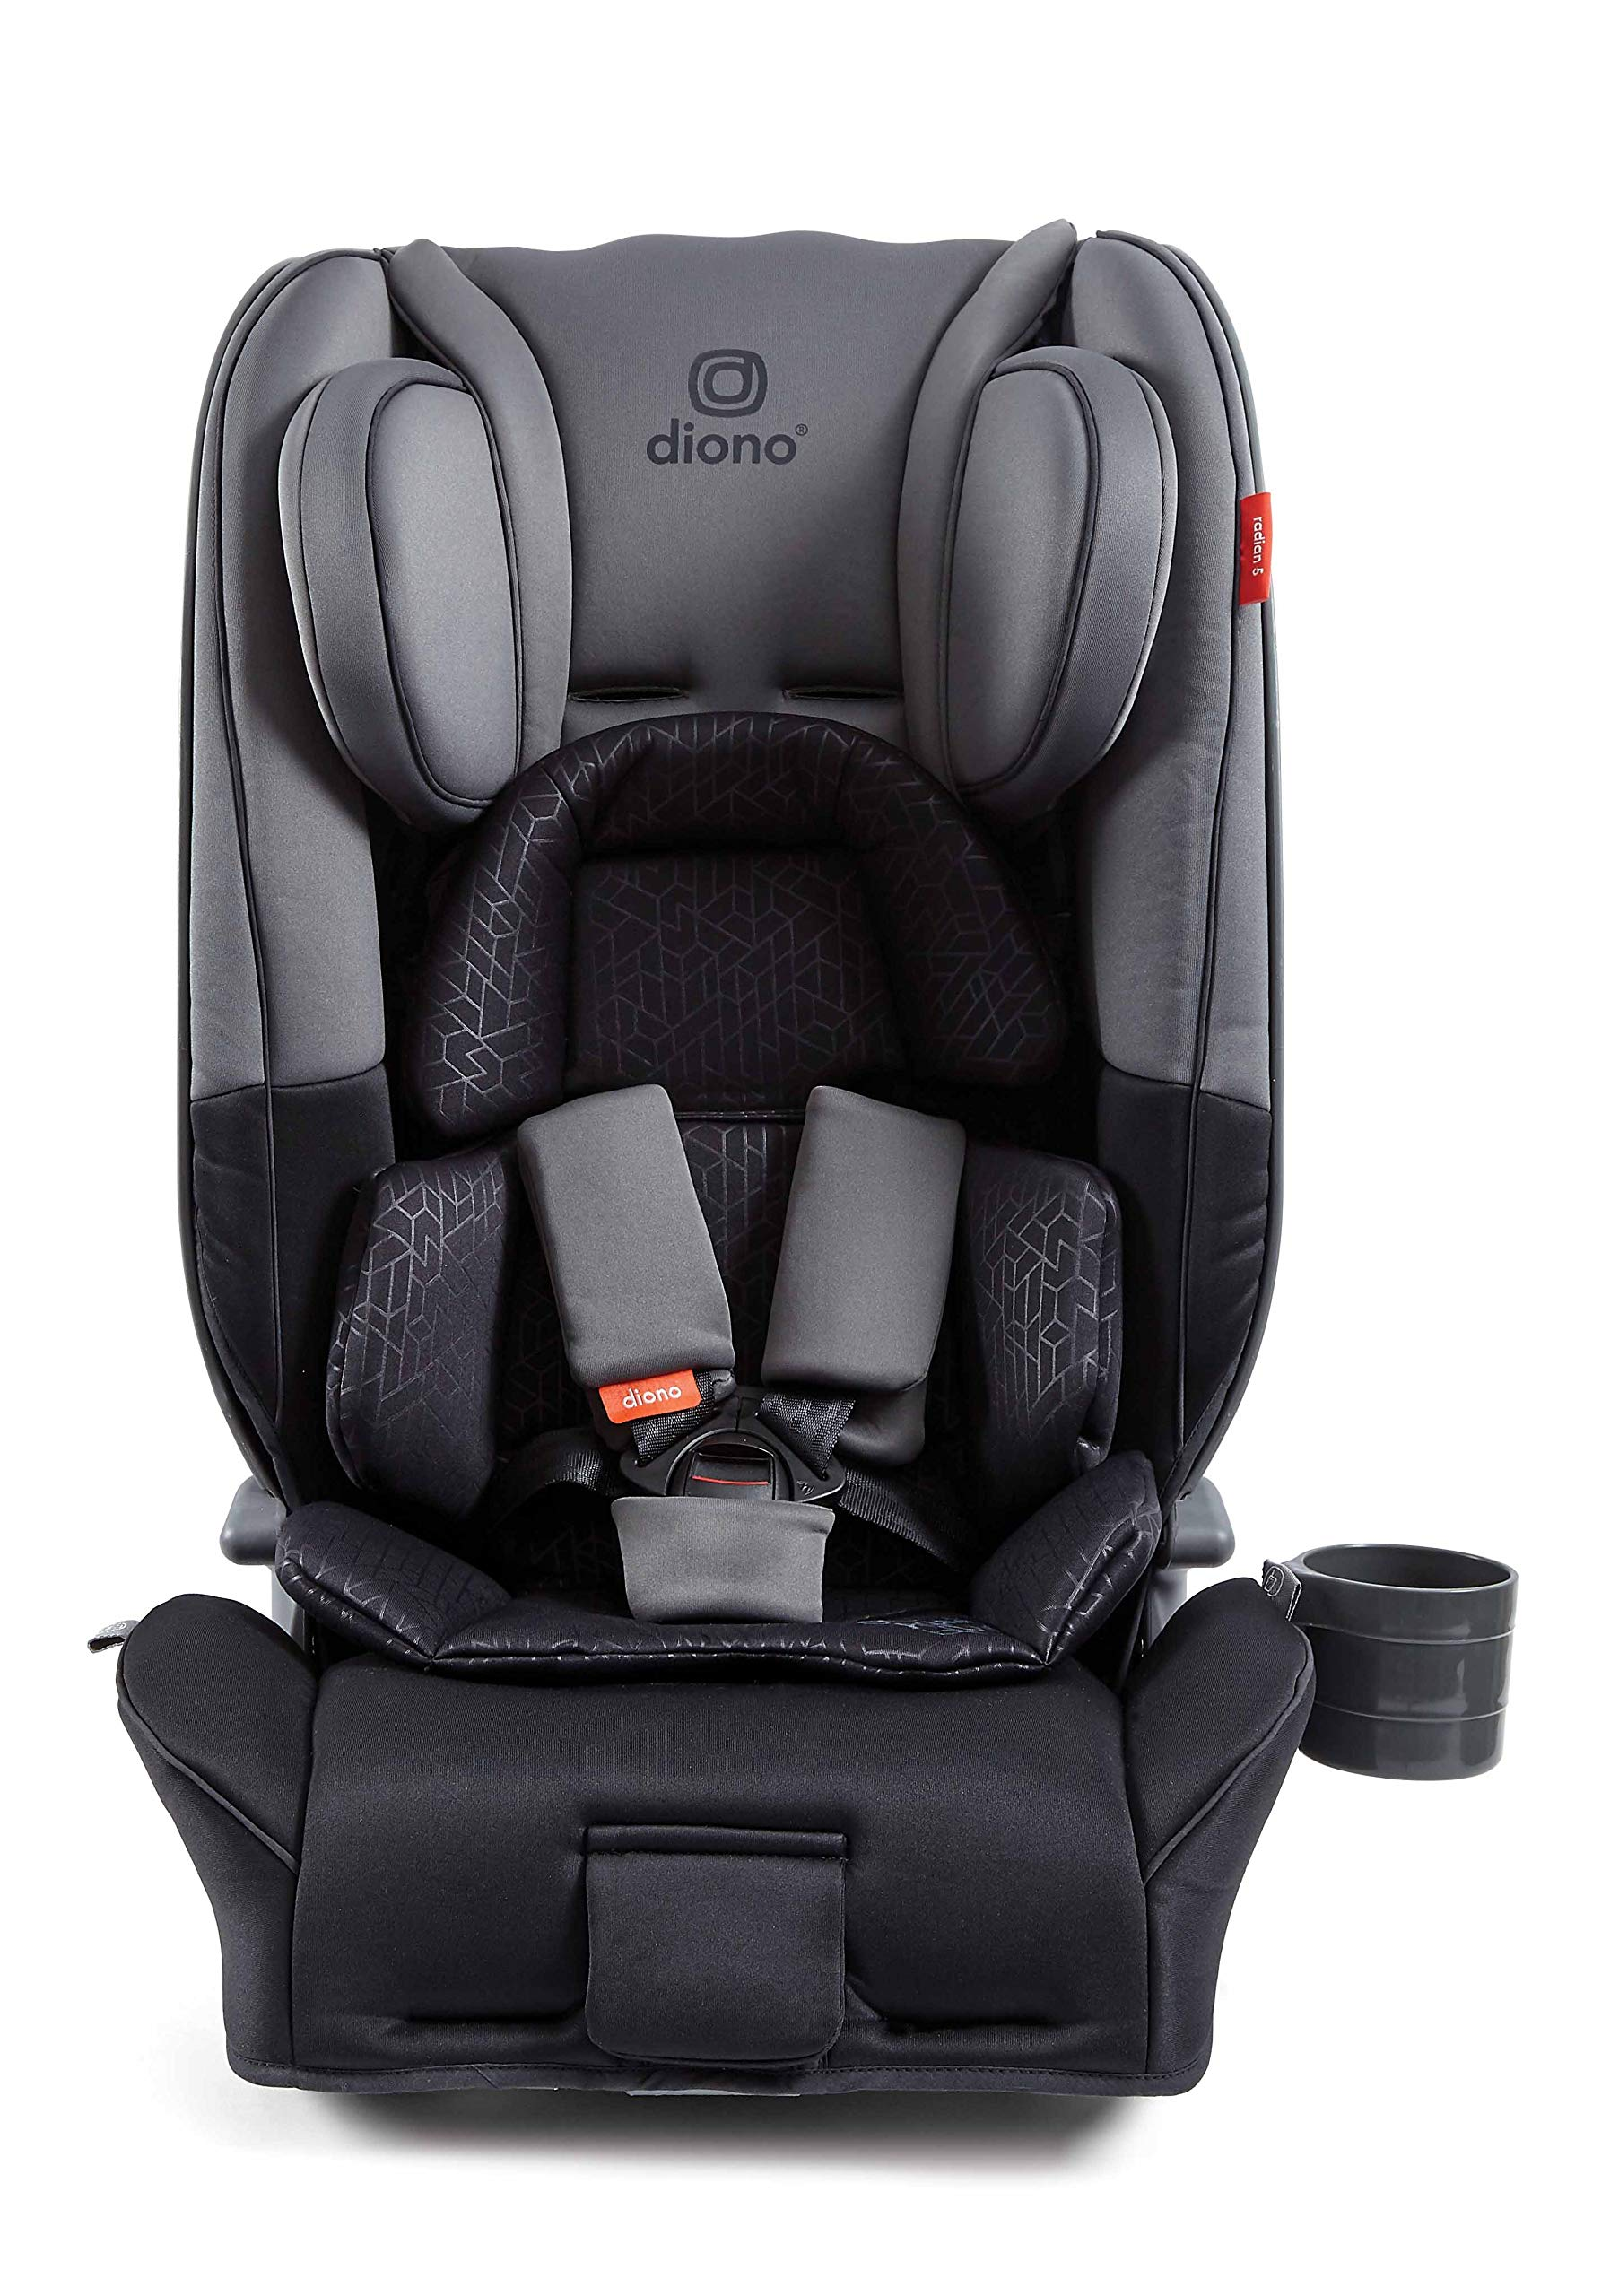 Diono Radian 5, Group 0+/1/2 Car Seat, Extended Rear-Facing from Birth to 25kg, Forward-Facing 9-25kg, Dark Grey Diono The Original 3 Across Car Seat: Radian 5's clever design has a slimline profile allowing you to install three across in your vehicle without compromising internal seat dimensions or comfort. Worth the weight: Engineered with the famous Diono full, high-strength steel core that forms an unyielding structure to shield and protect your little one. Extended rear-facing: Keep your little ones in the safest travel position for as long as possible, from birth up to 25 kgs (approx. 6 years old). 1